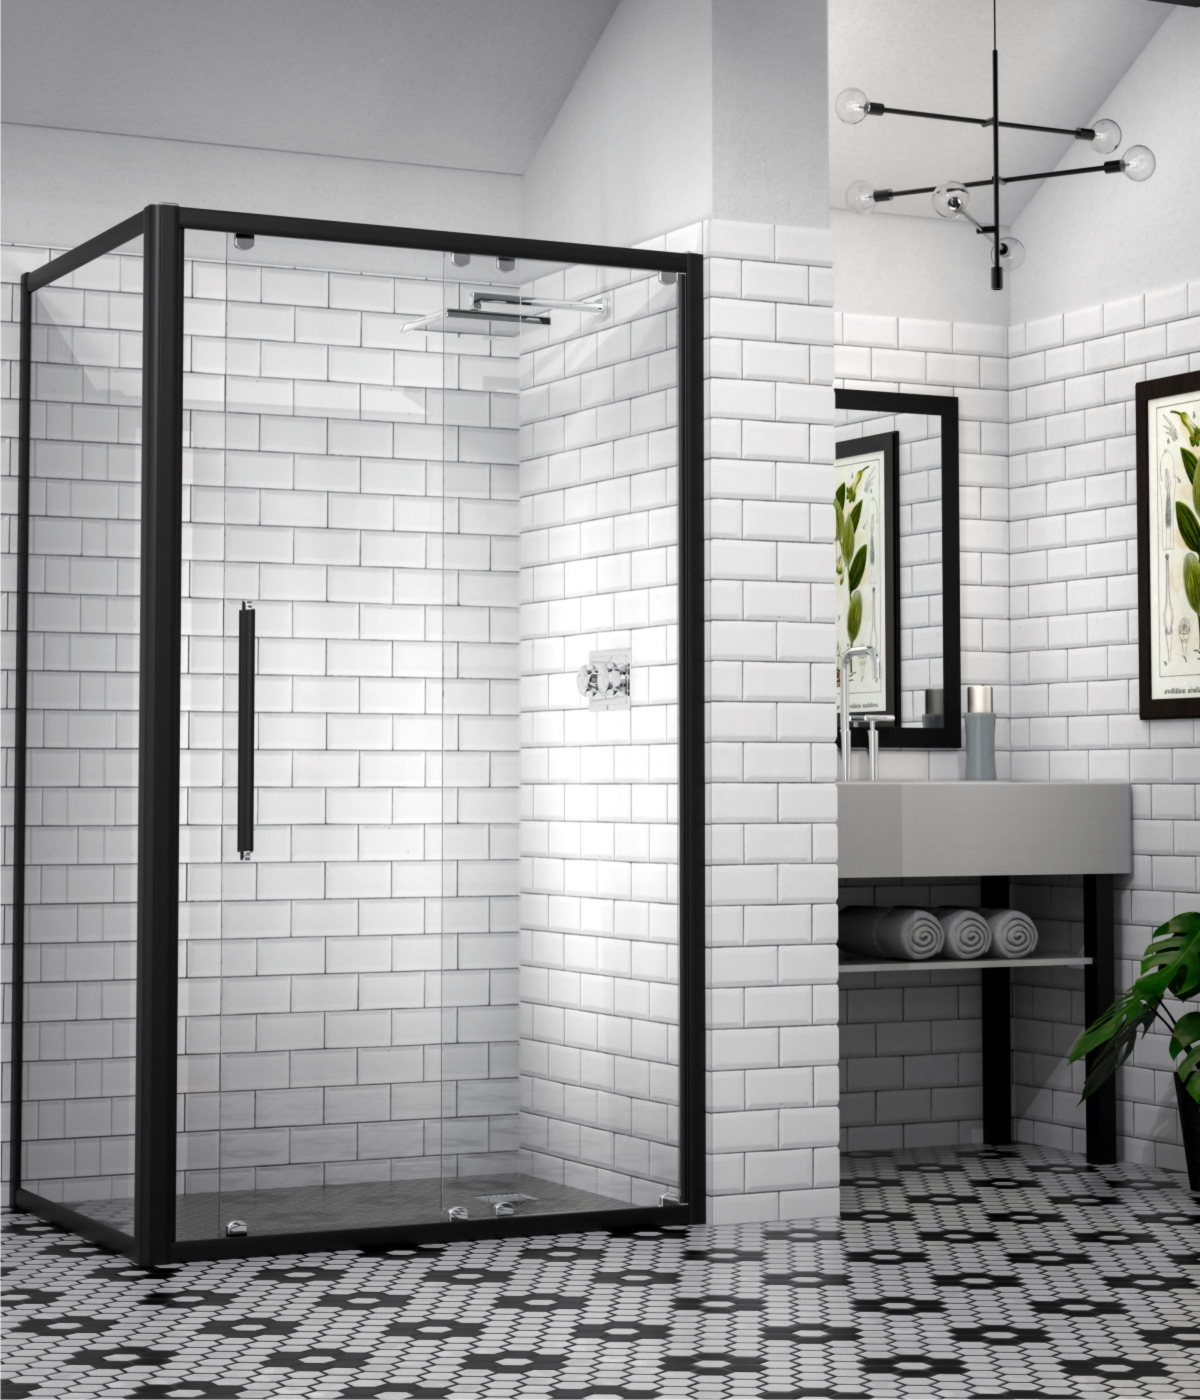 Market Favourite Silhouette Framed Shower Doors Showerline